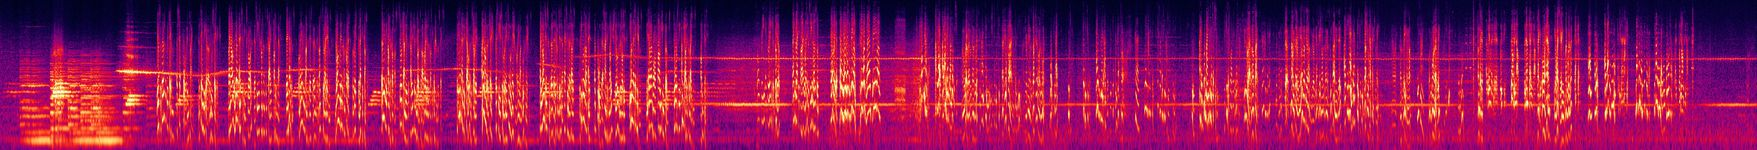 Closed Planet - Opening - Spectrogram.jpg